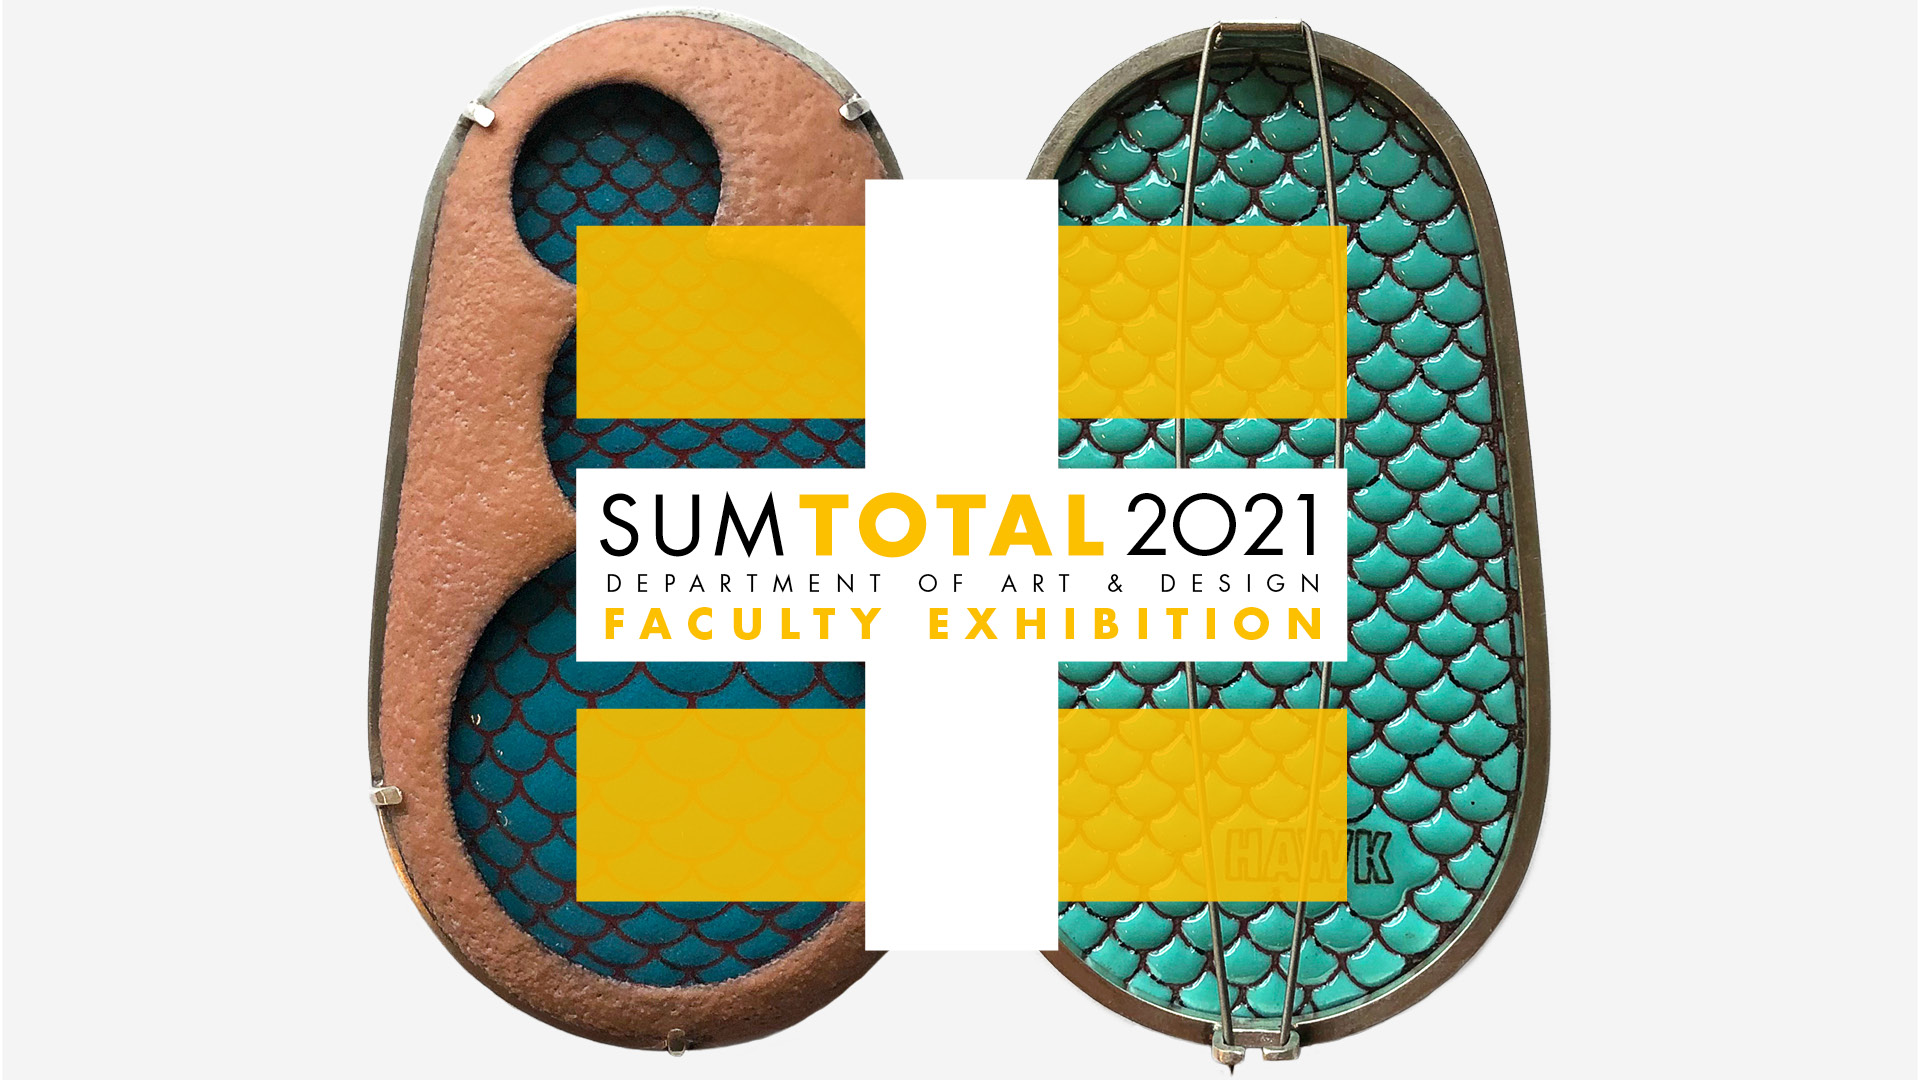 Details For Event 19744 – 2021 Sum Total: Department of Art & Design Faculty Exhibition